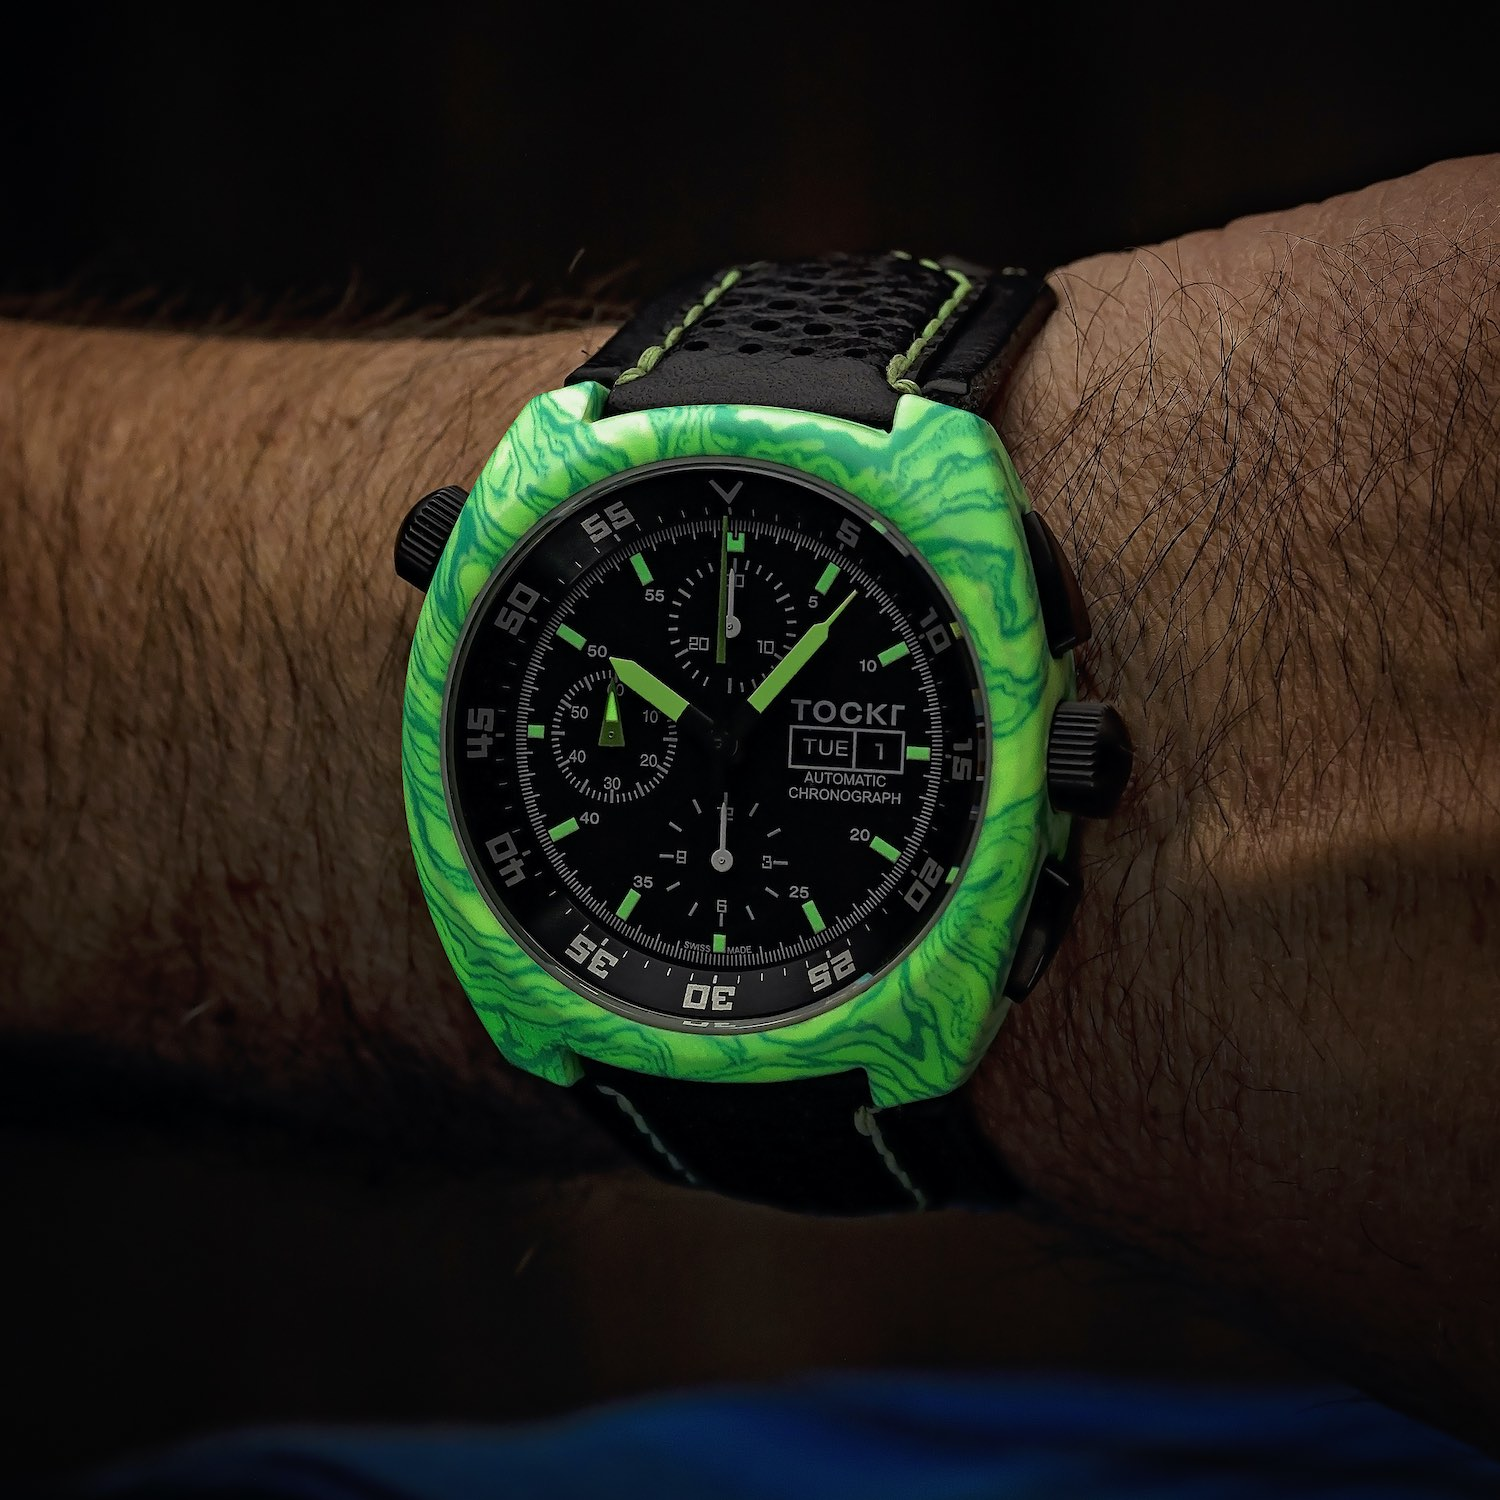 Tockr Air-Defender Lume with Luminescent Hydro Dipped Cases - 3